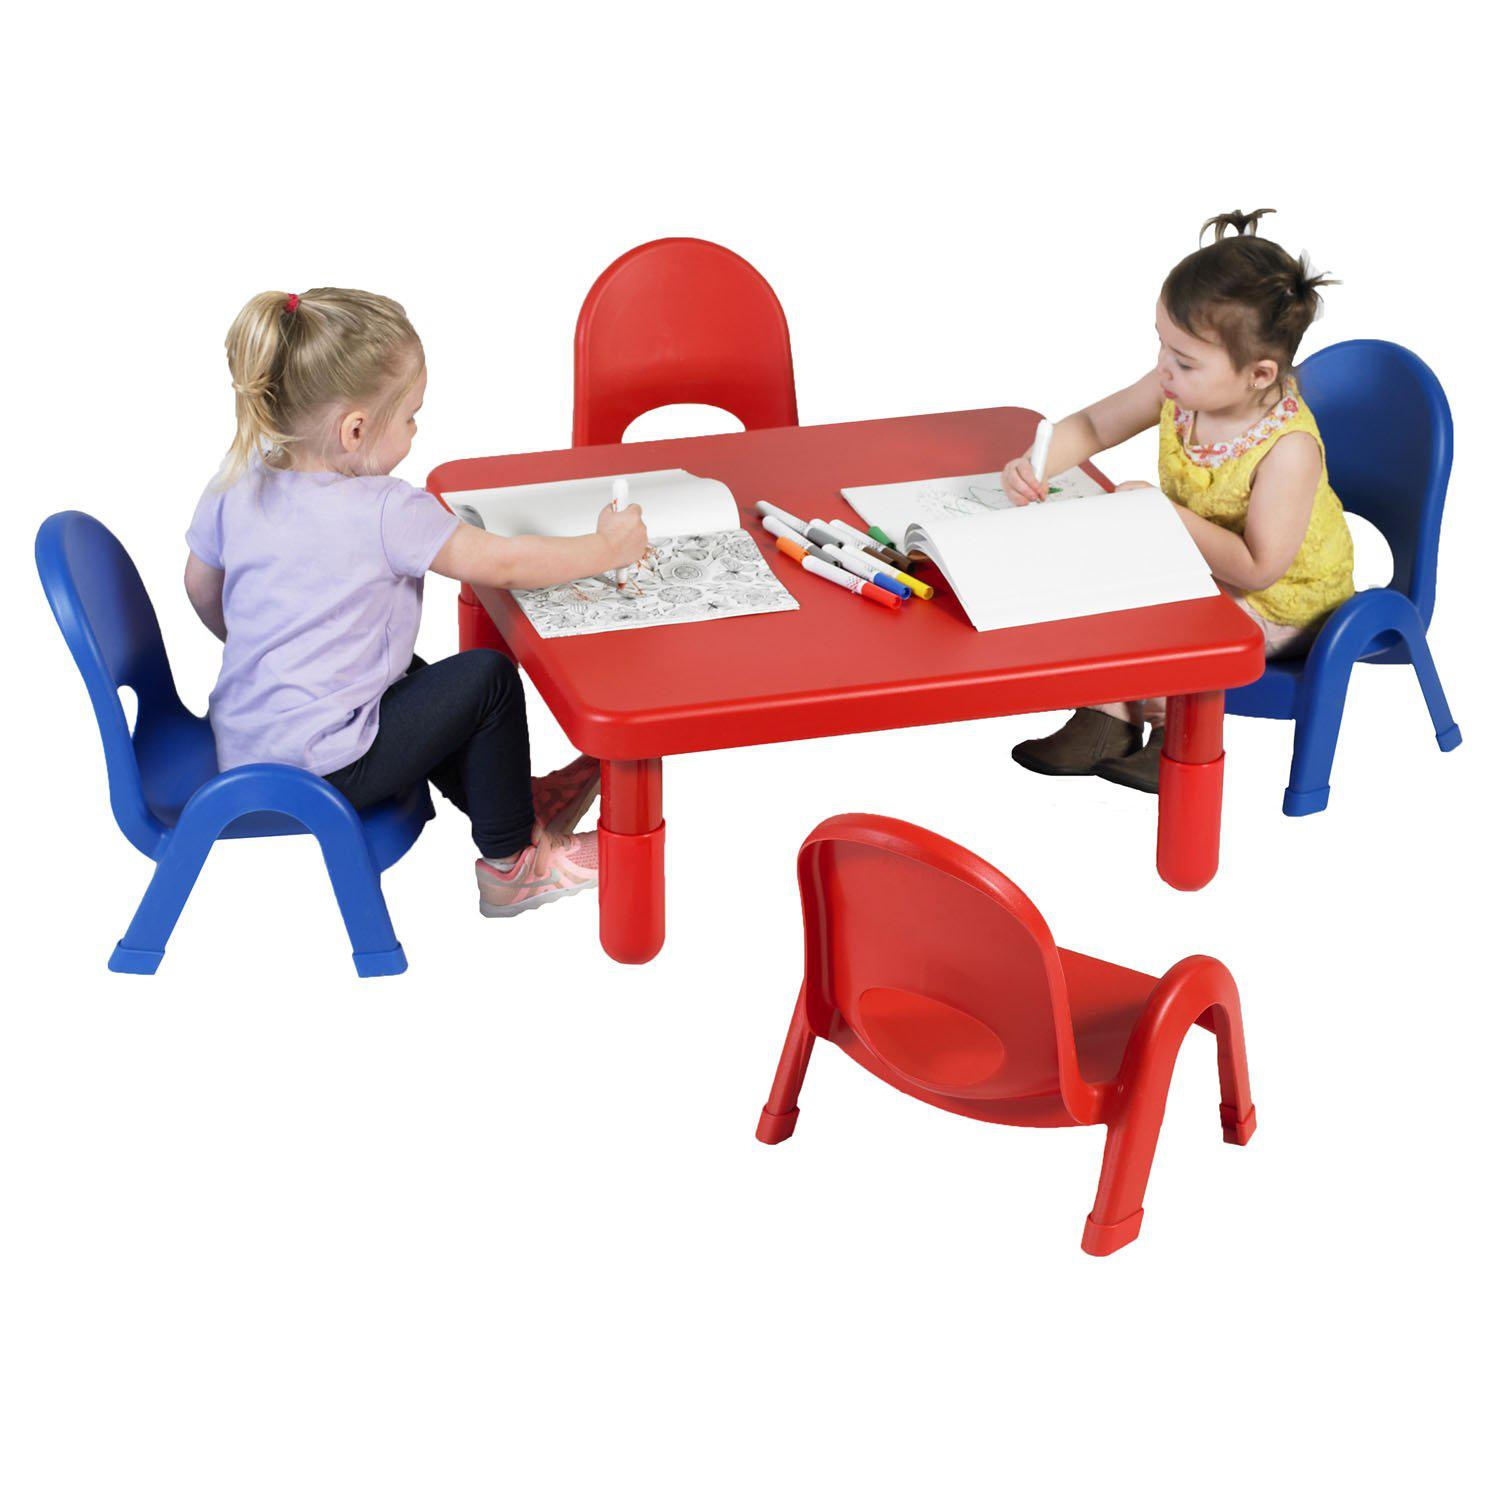 "Toddler MyValue™ Table and Chair Set - 28"" Square x 12""-High Candy Apple Red Table with 2 Royal Blue and 2 Candy Apple Red 5""-High Chairs"